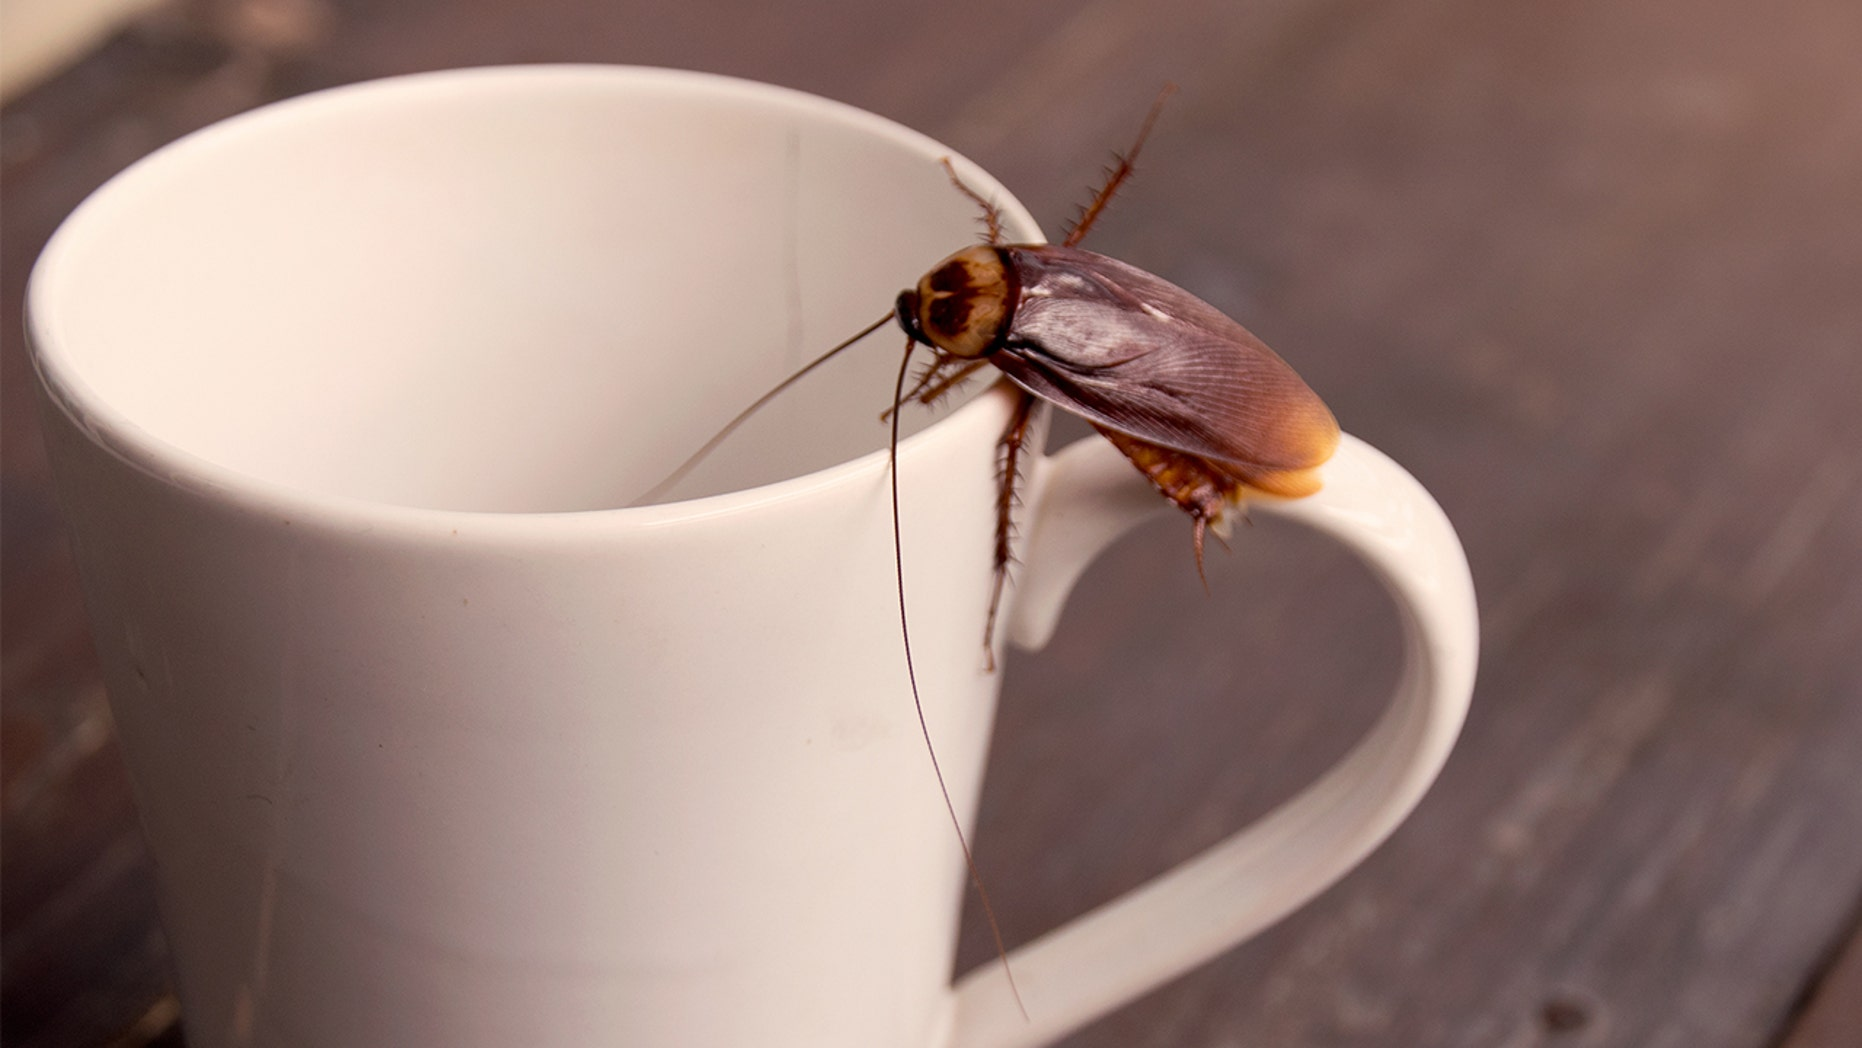 Would you drink cockroach milk?